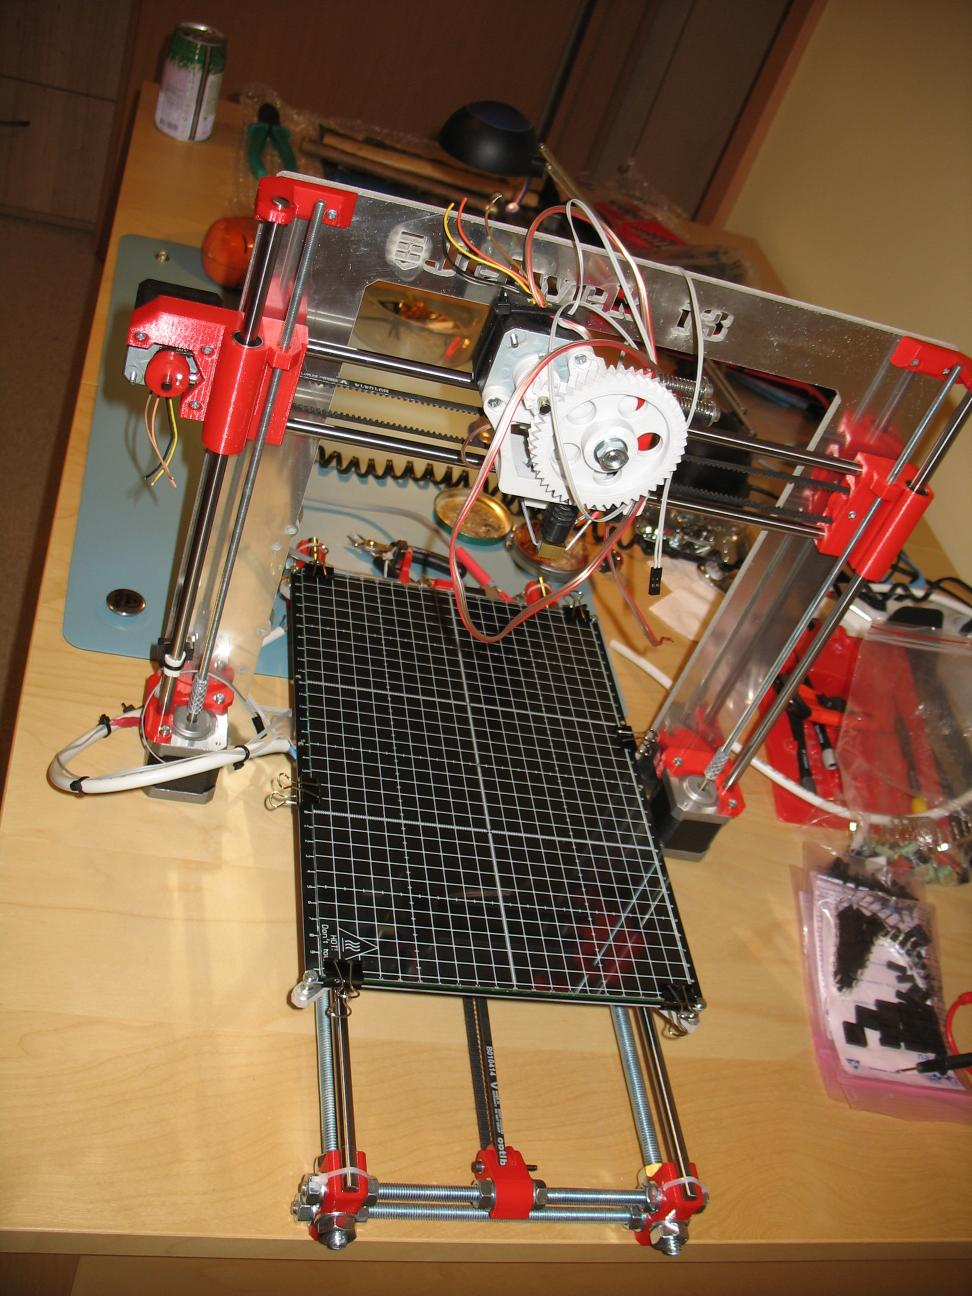 extruder, heated bed and cabling